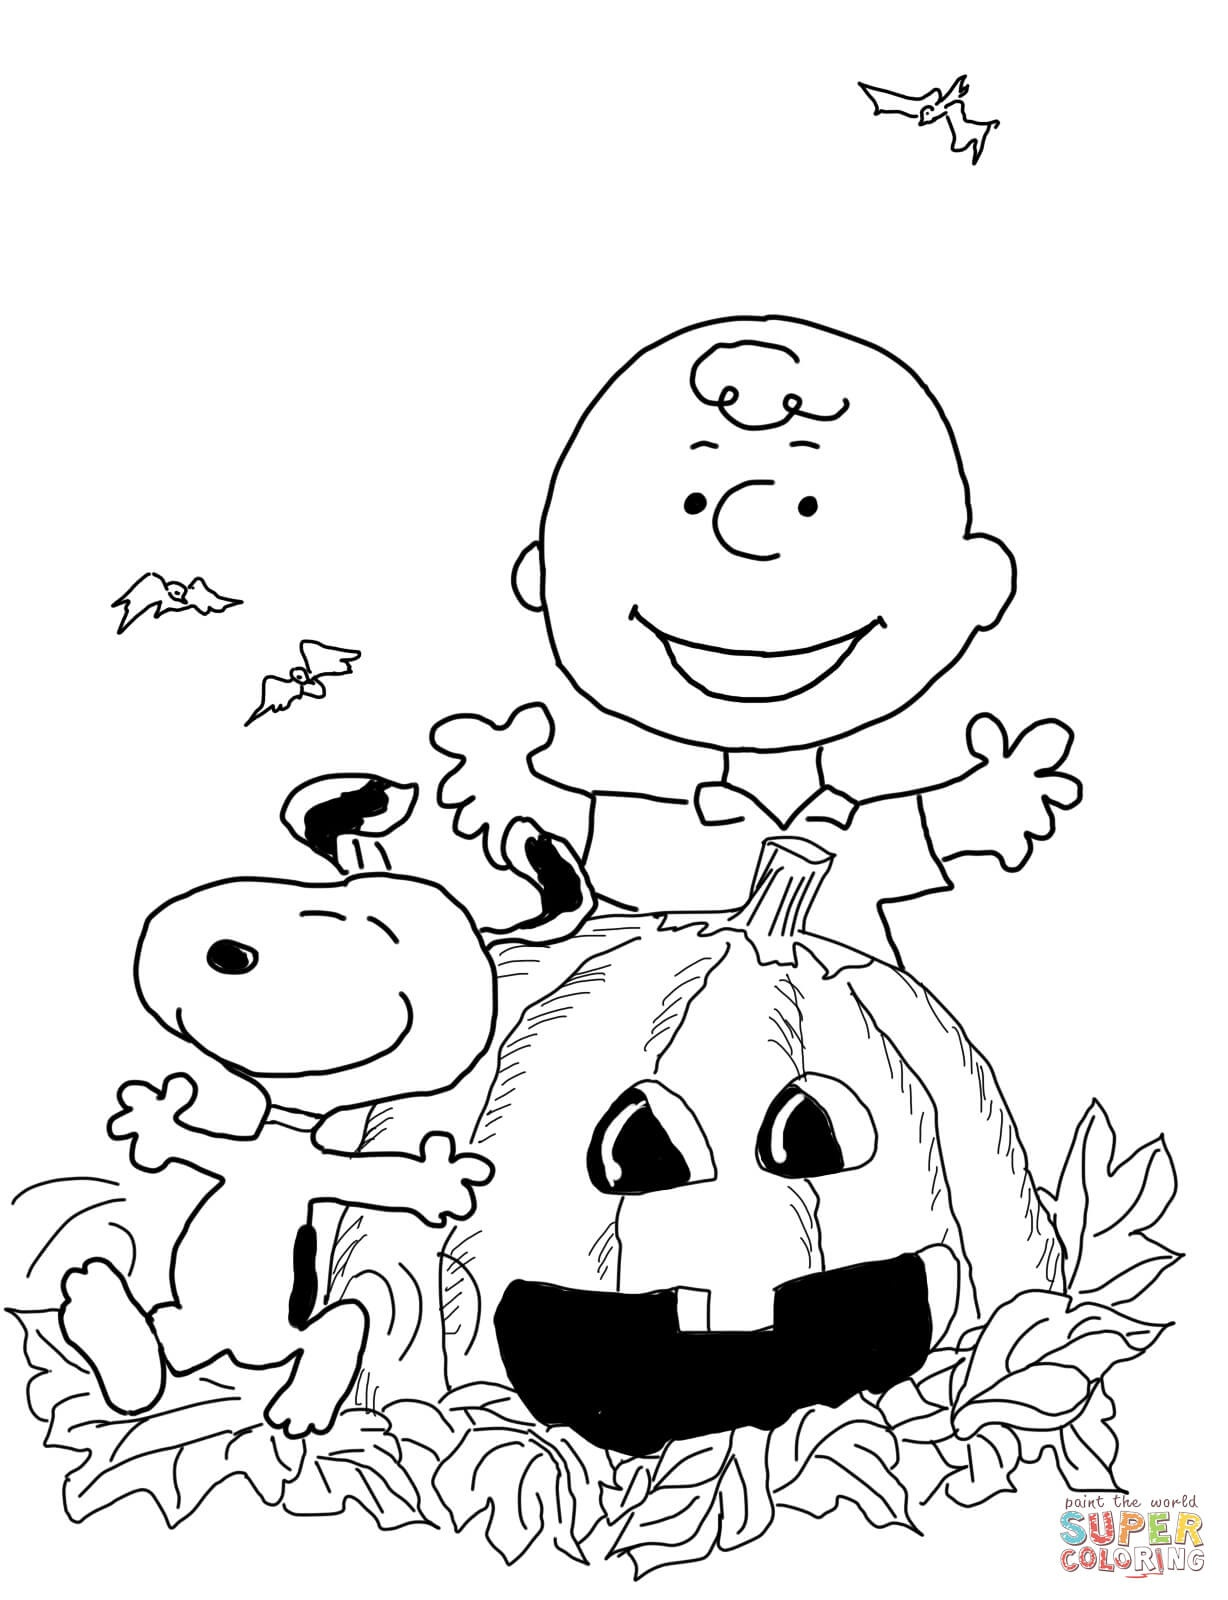 Charlie Brown Halloween Coloring Page | Free Printable Coloring Pages - Free Online Printable Halloween Coloring Pages